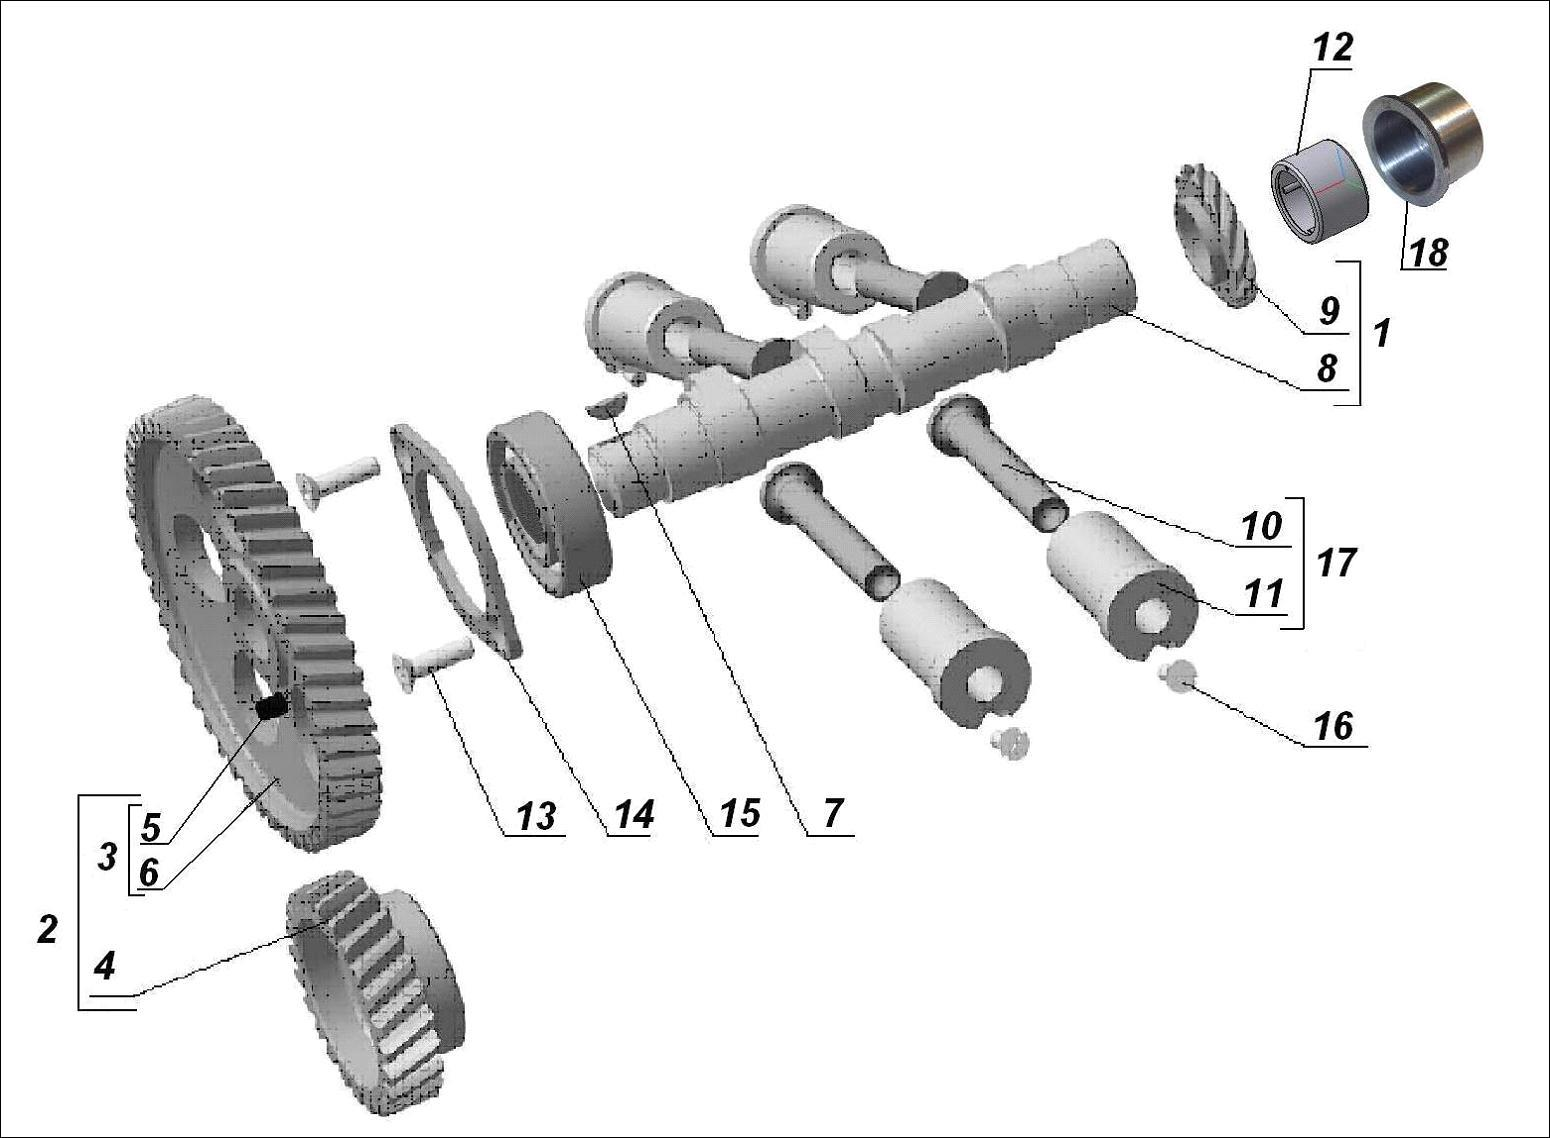 Ural Engine Diagram Model Details Imz Russian Sidecar Wiring Diagrams Motorcycles Camshaft And Valve Train Components